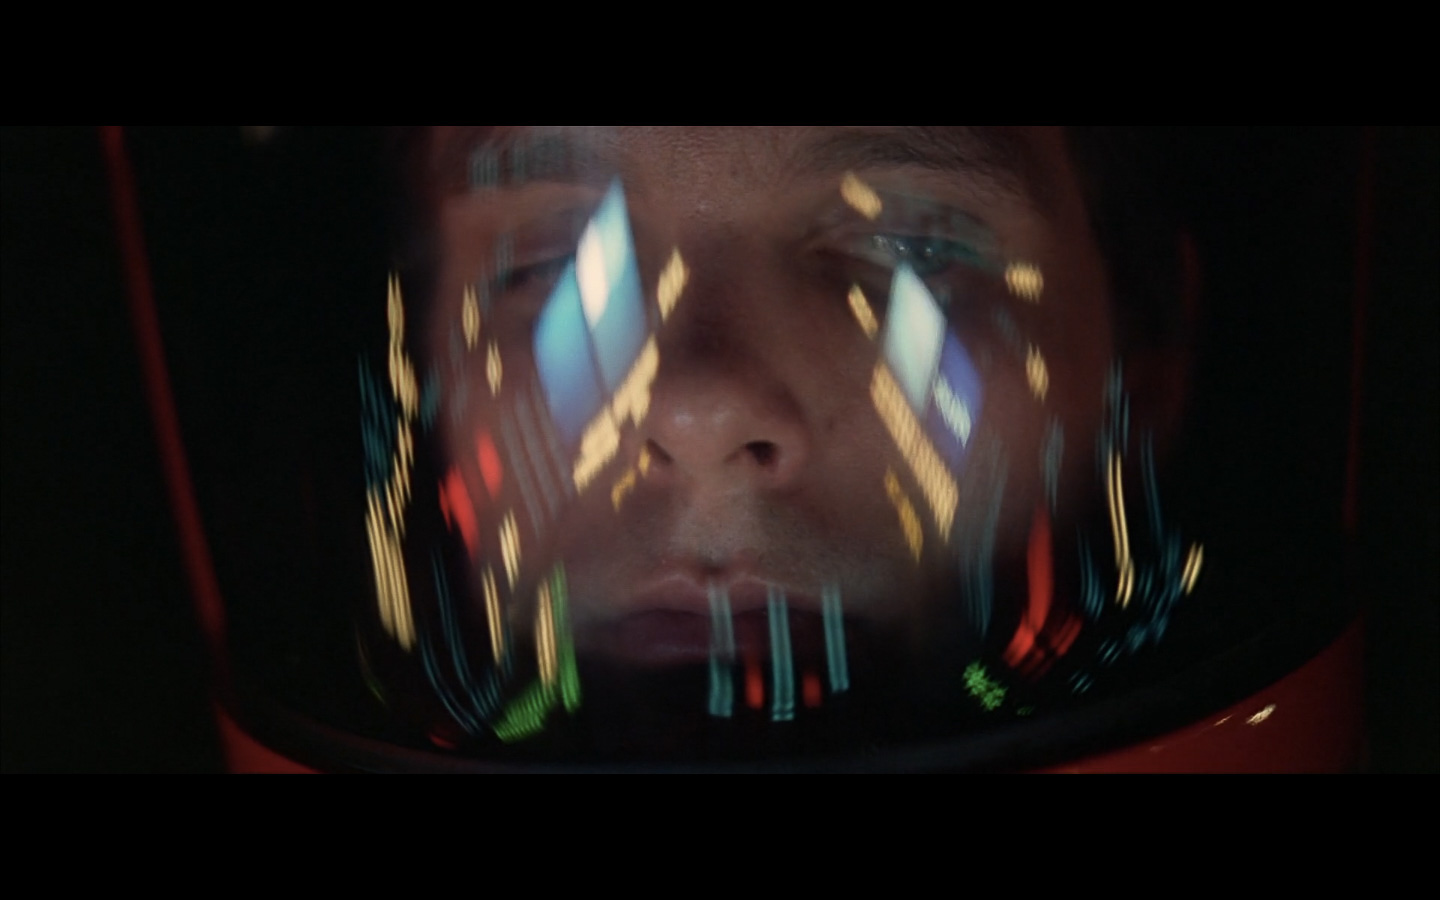 reflection space odyssey helmet-1